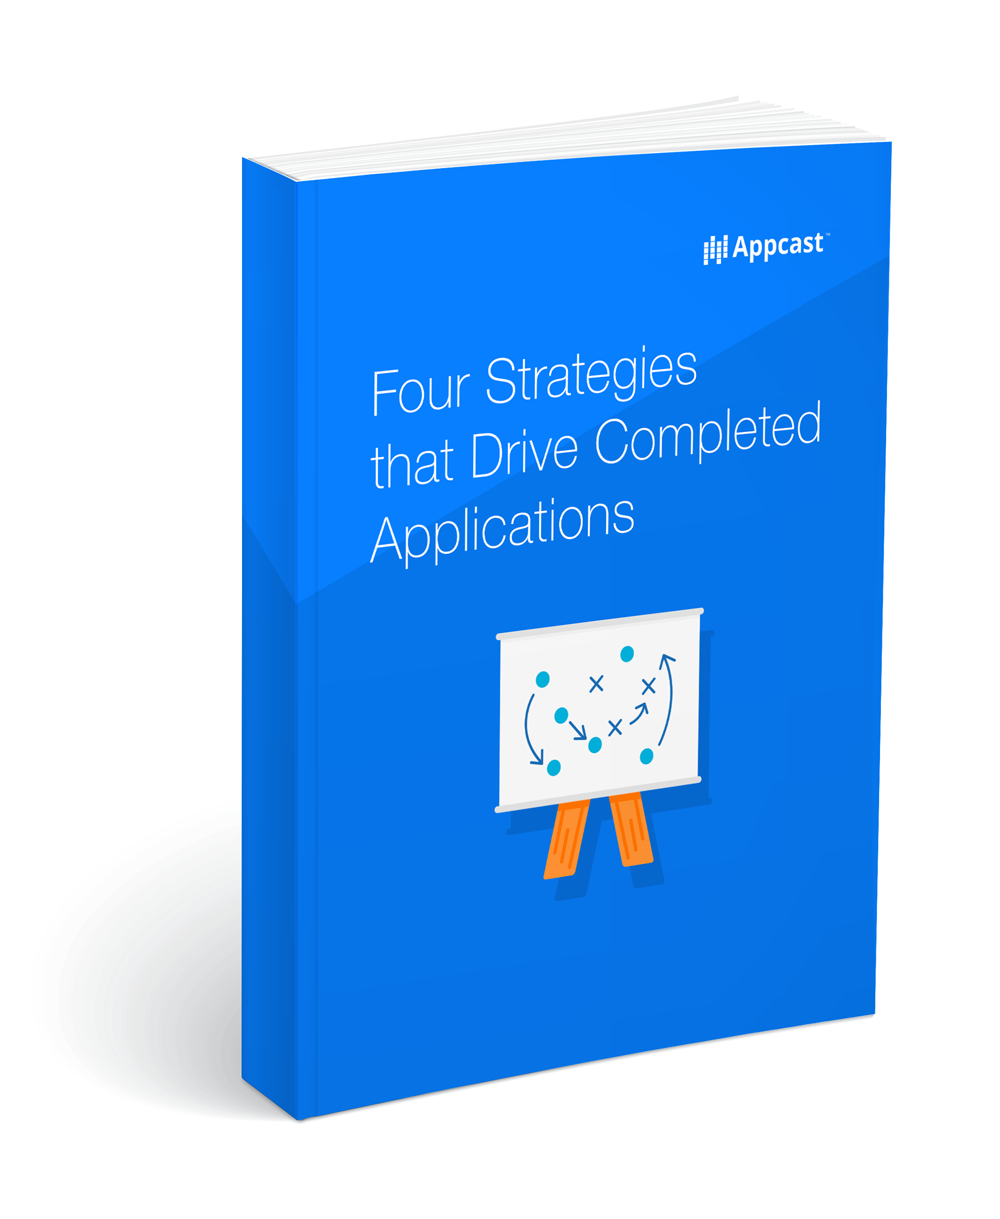 Four Strategies that Drive Completed Applications